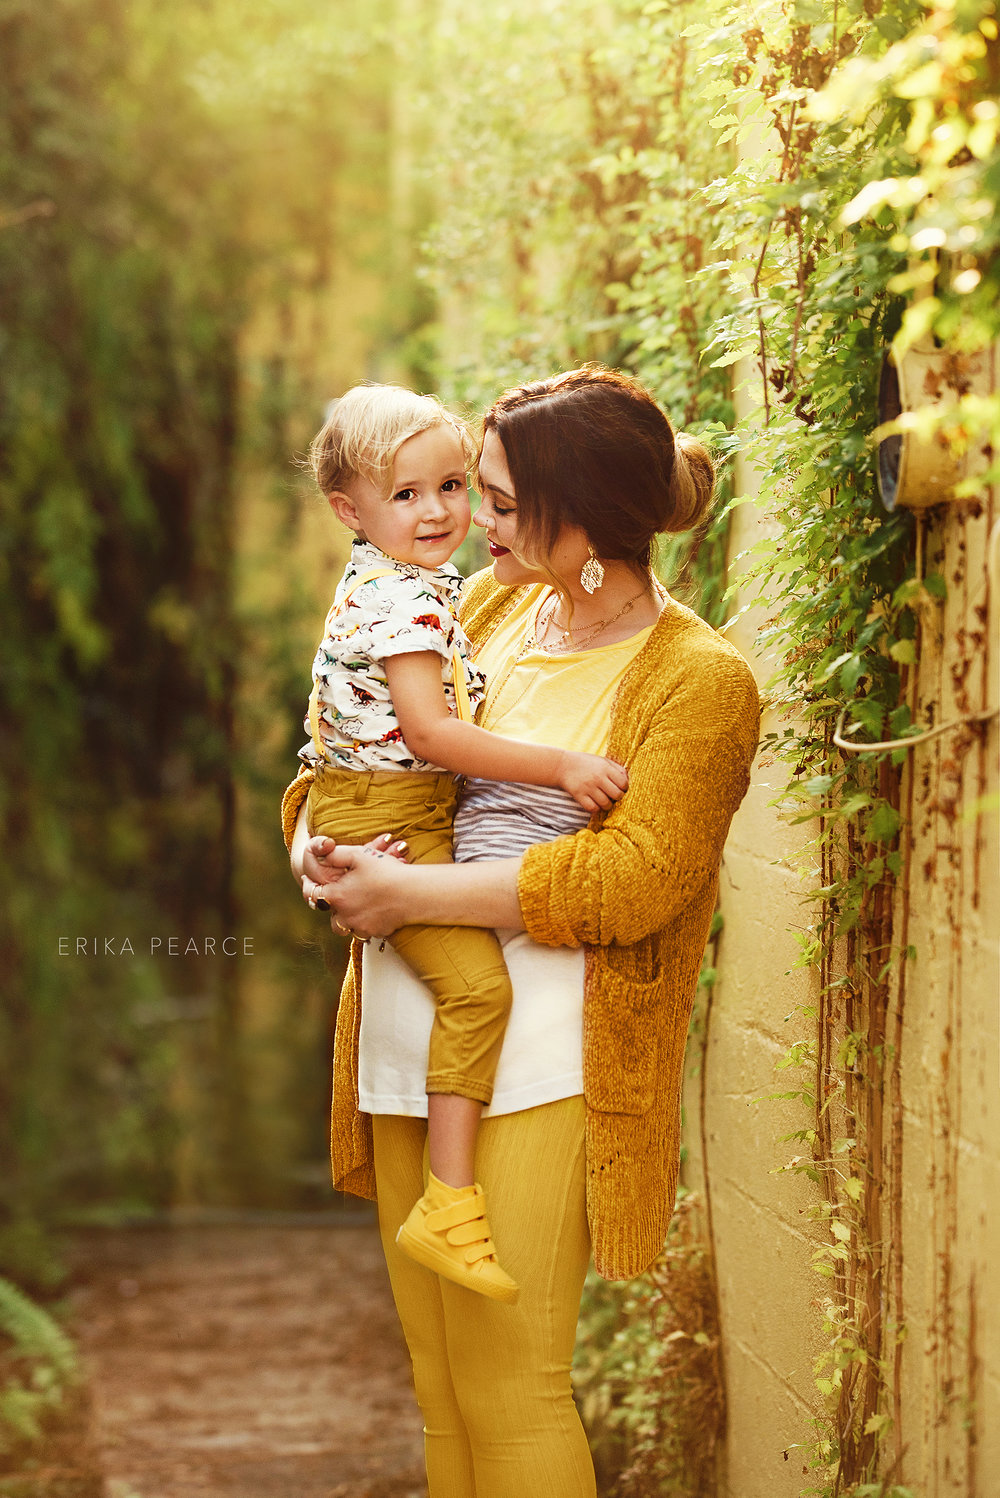 Copy of Covington LA Birth PhotographyMandeville Madisonville Louisiana Birth Photographer Styled Lifestyle Photography New Orleans NOLA Northshore whimsical